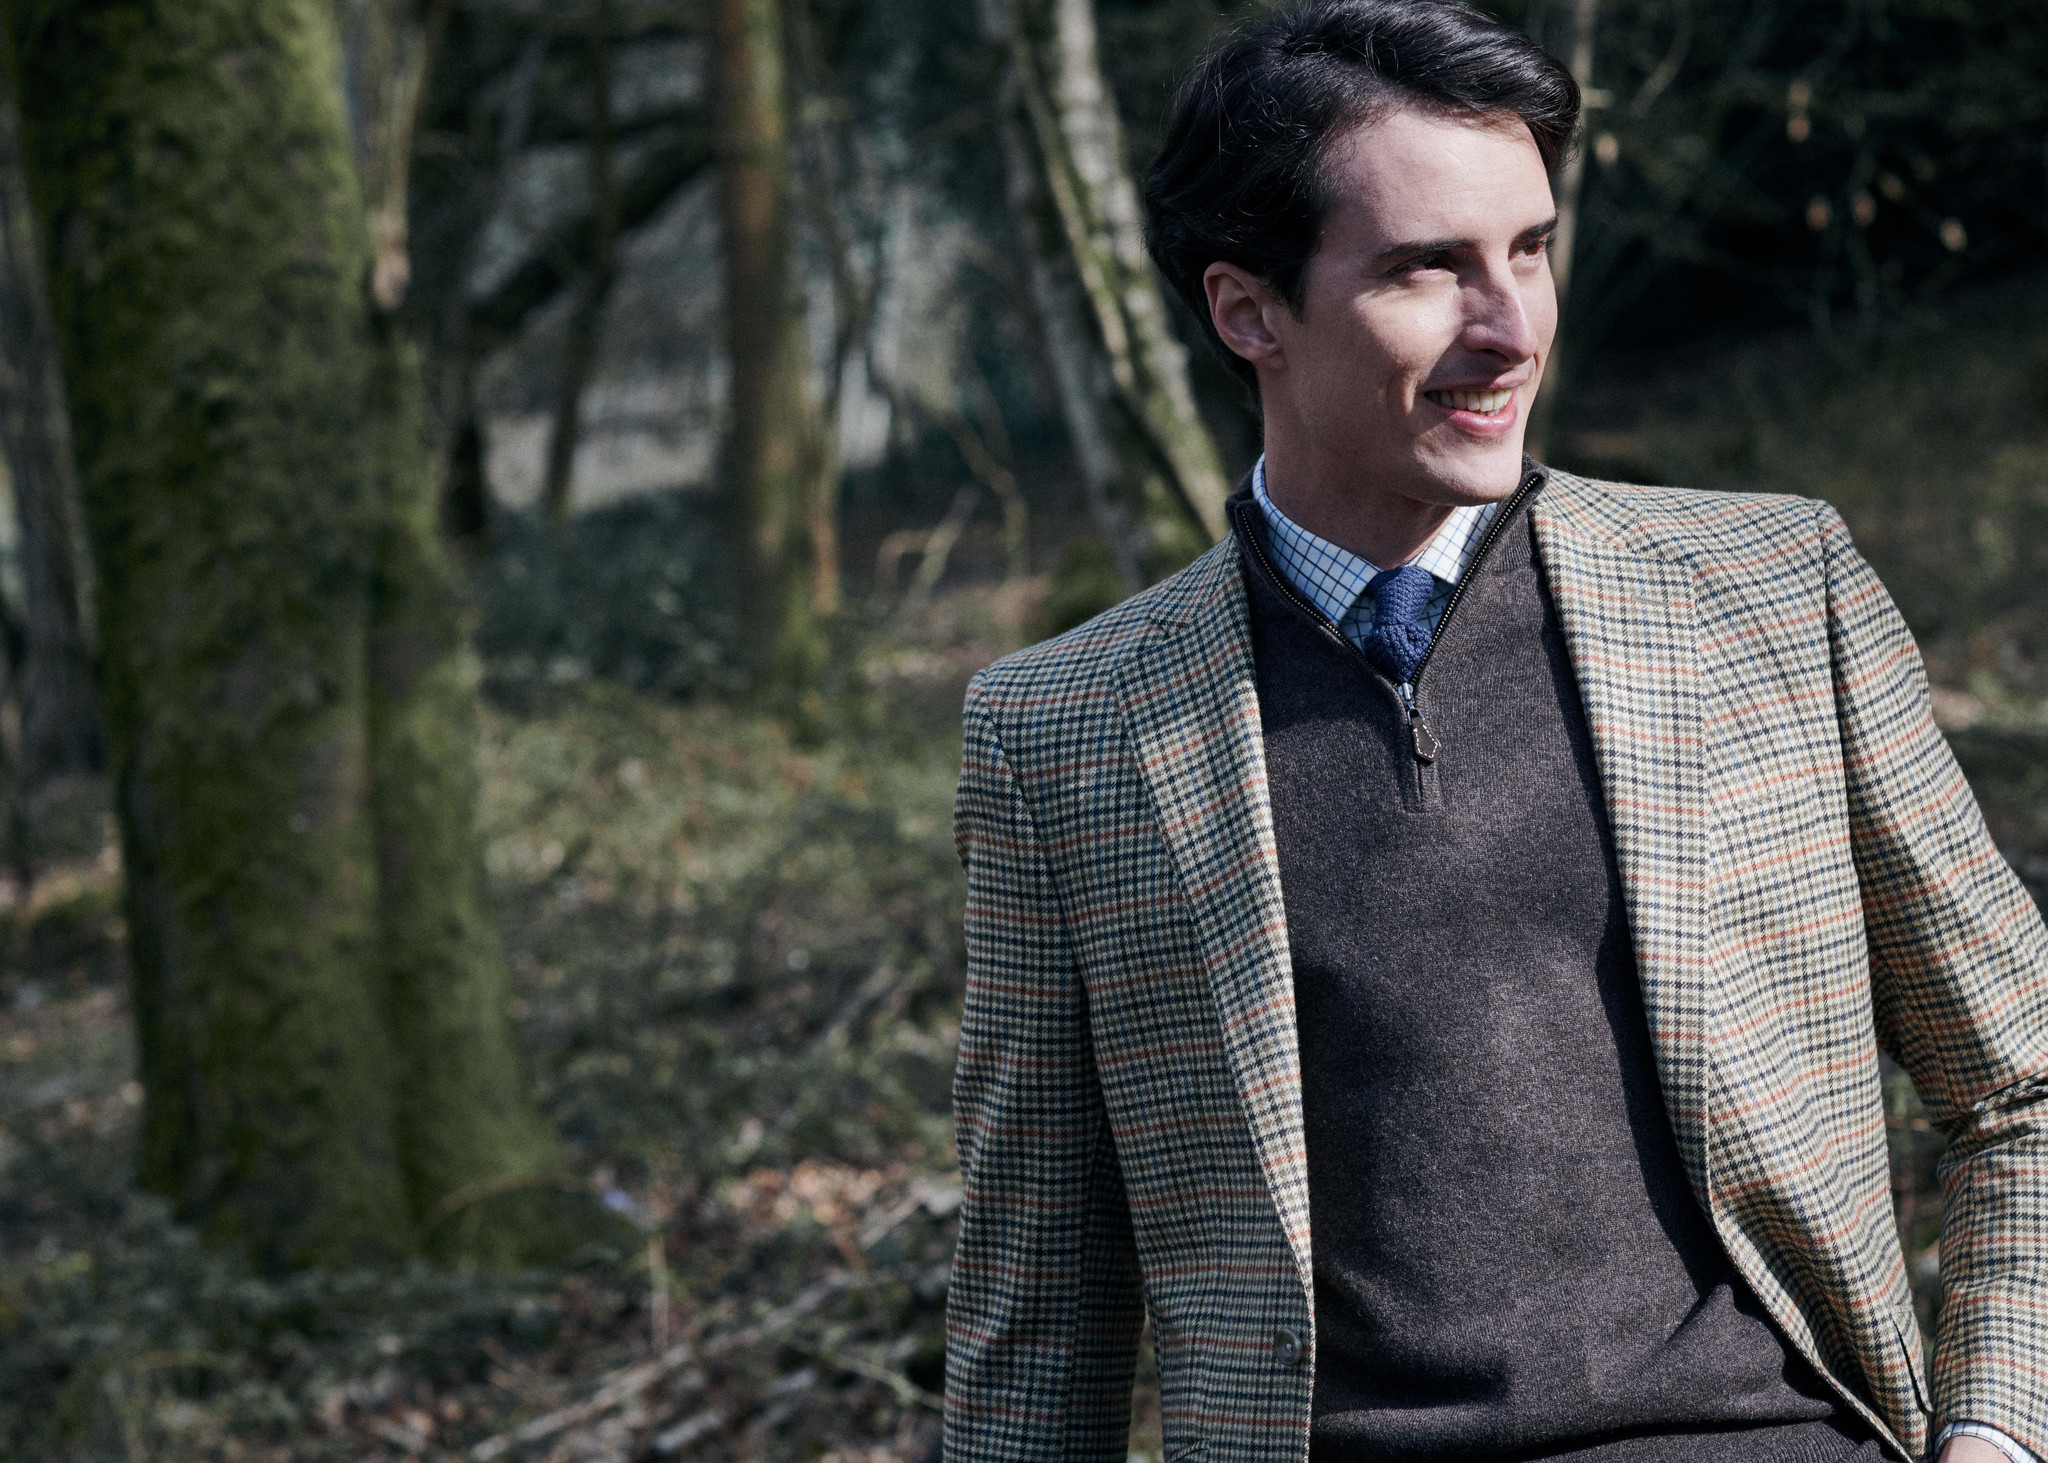 'Check Yourself' with Heritage Tweeds